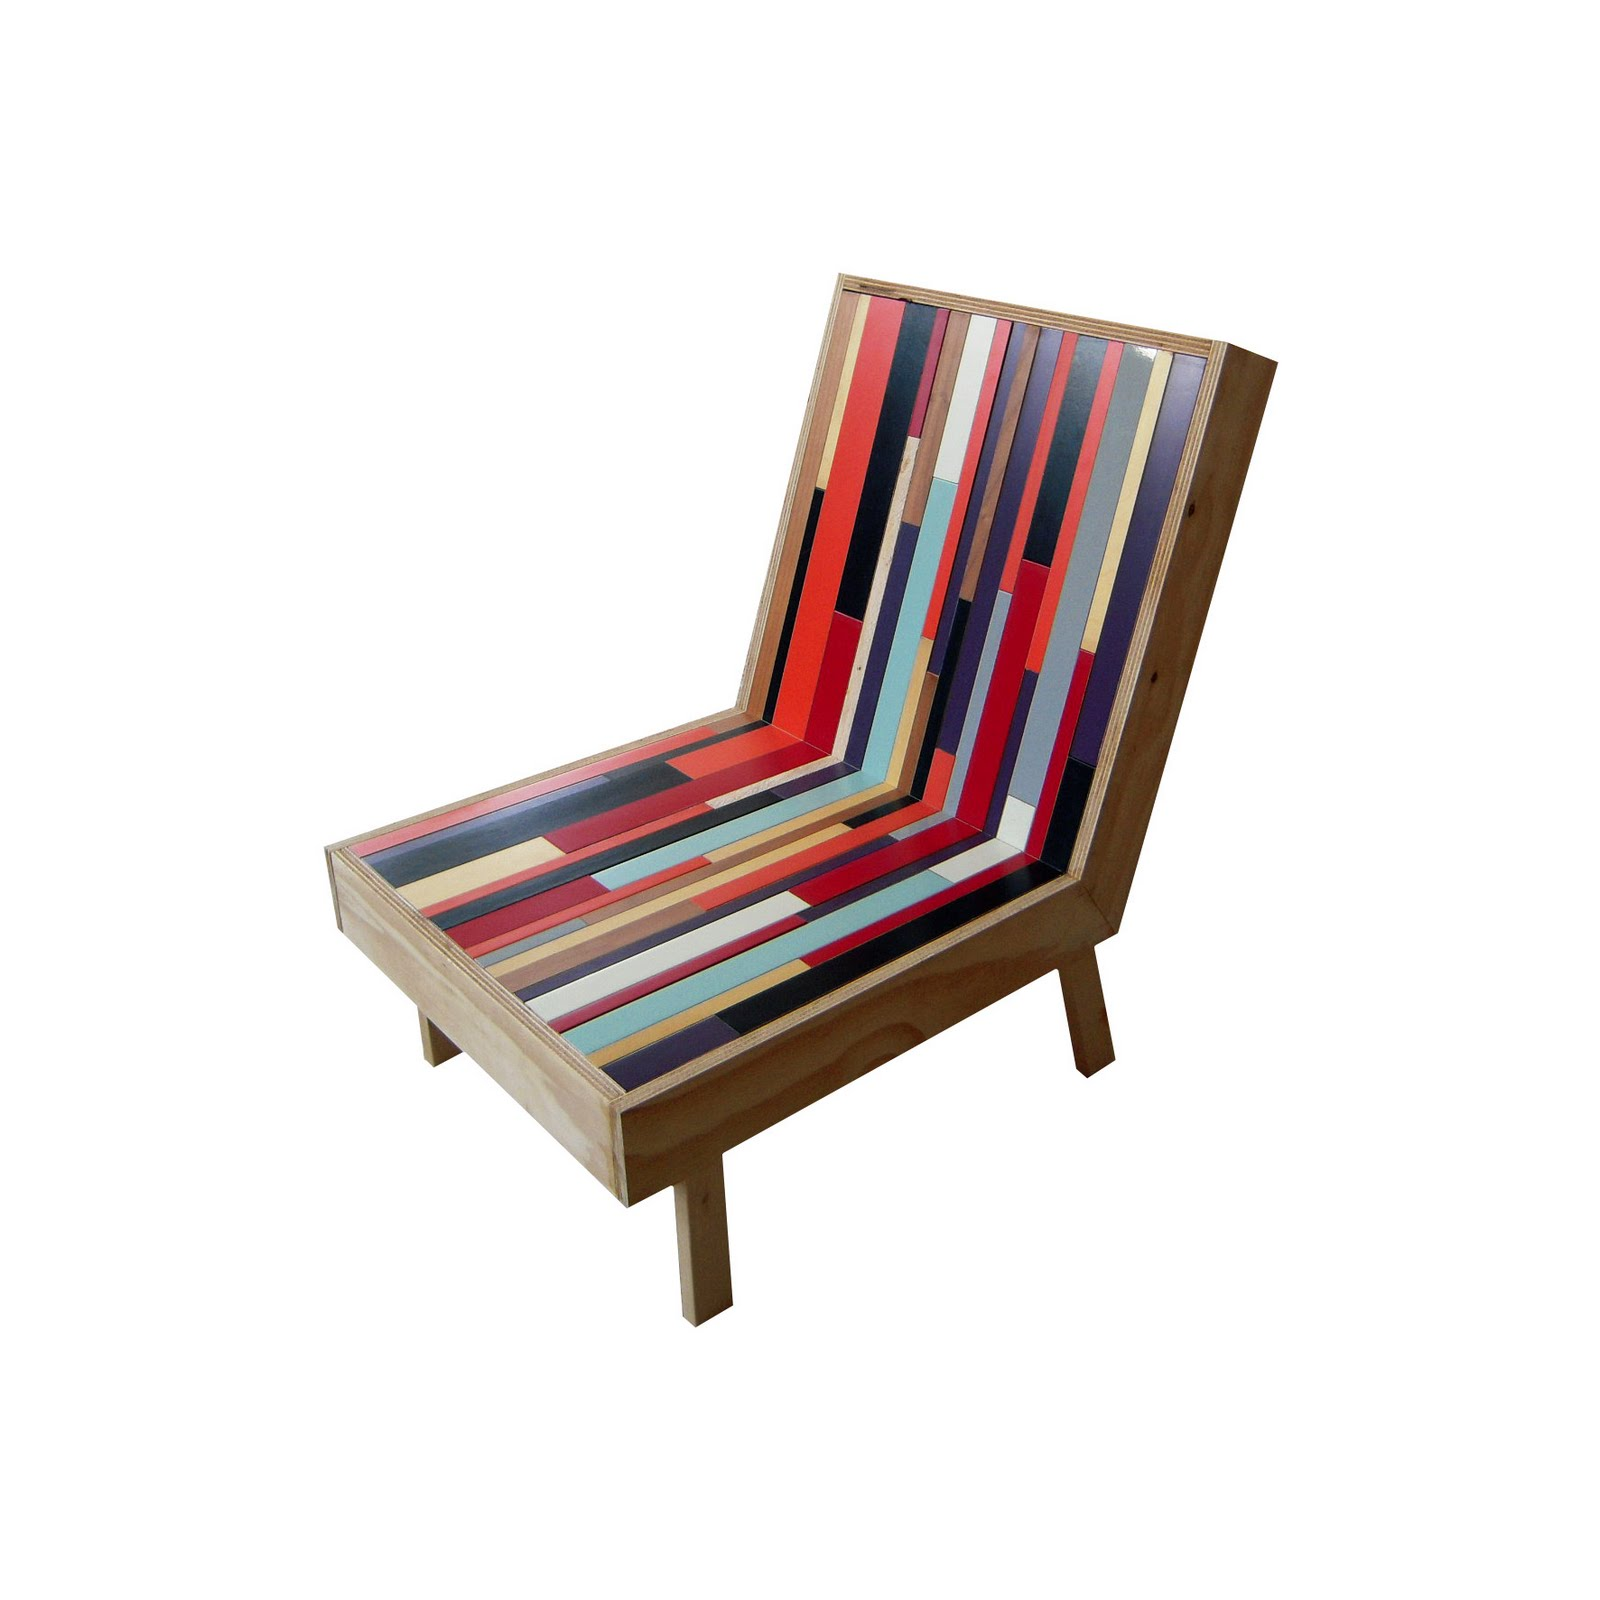 WEAFER DESIGN: Furniture From Recycled Materials